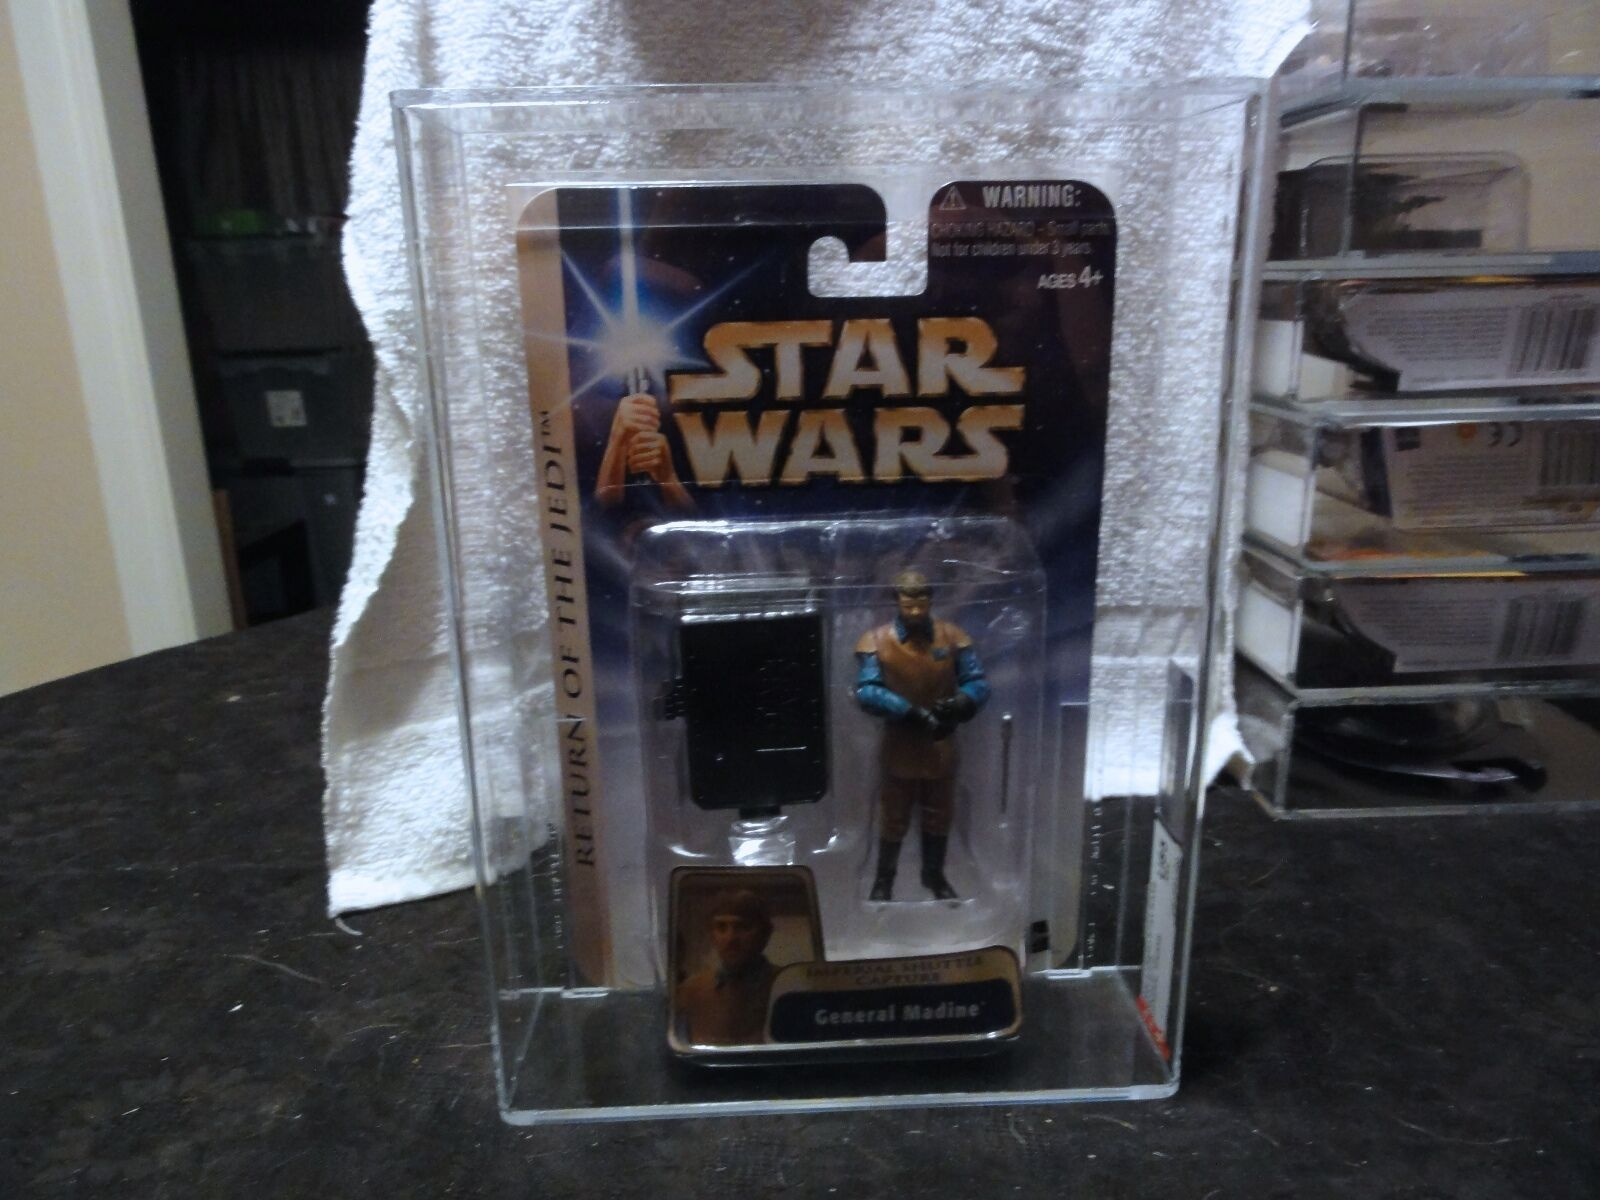 Star Wars 2004 Star Wars ROTJ Gold General Madine AFA Sealed MIB BOX